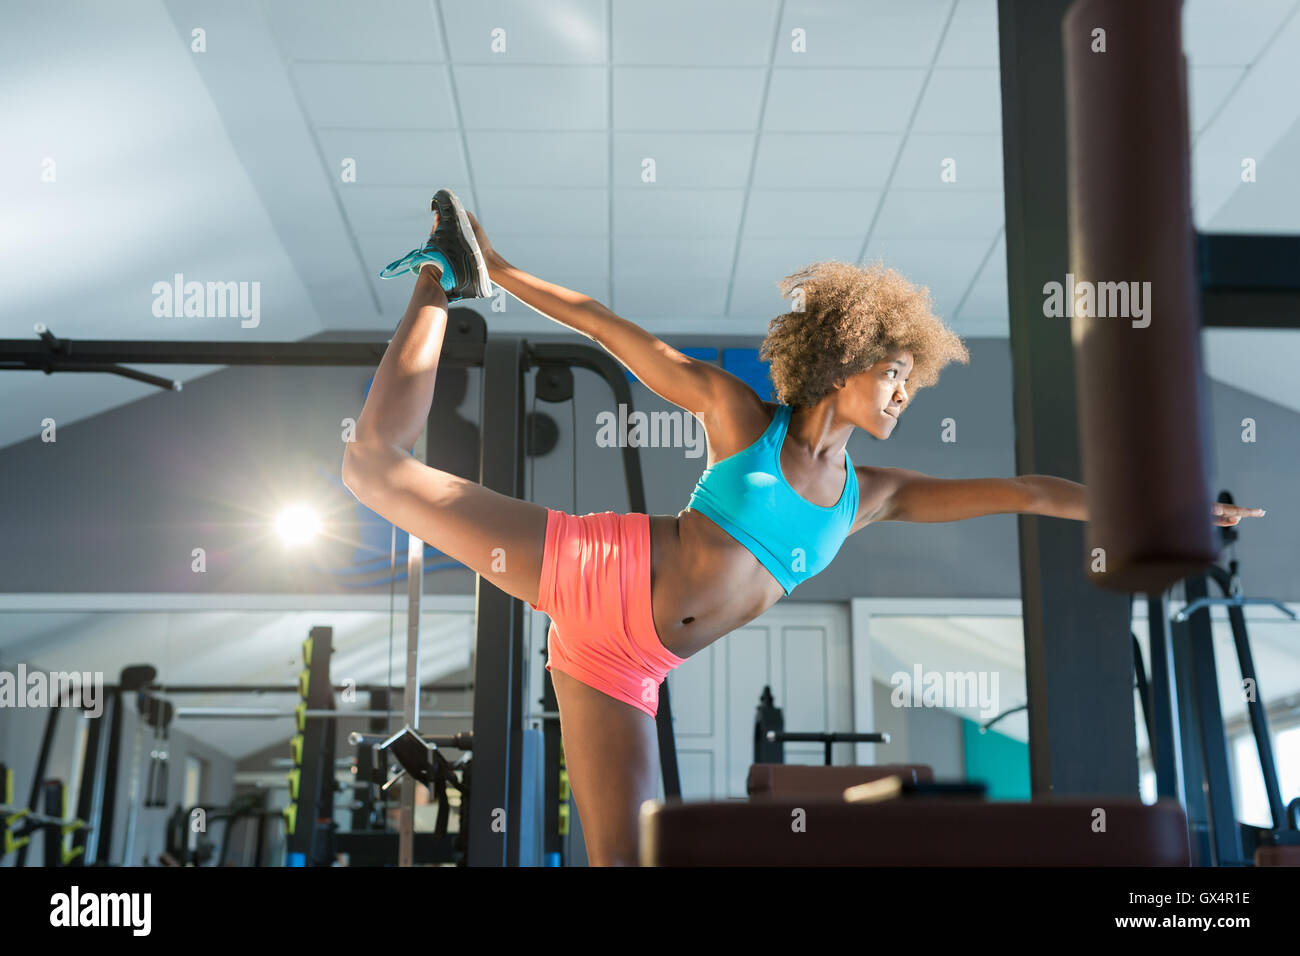 Gym woman stretching her leg for warm-up - Stock Image